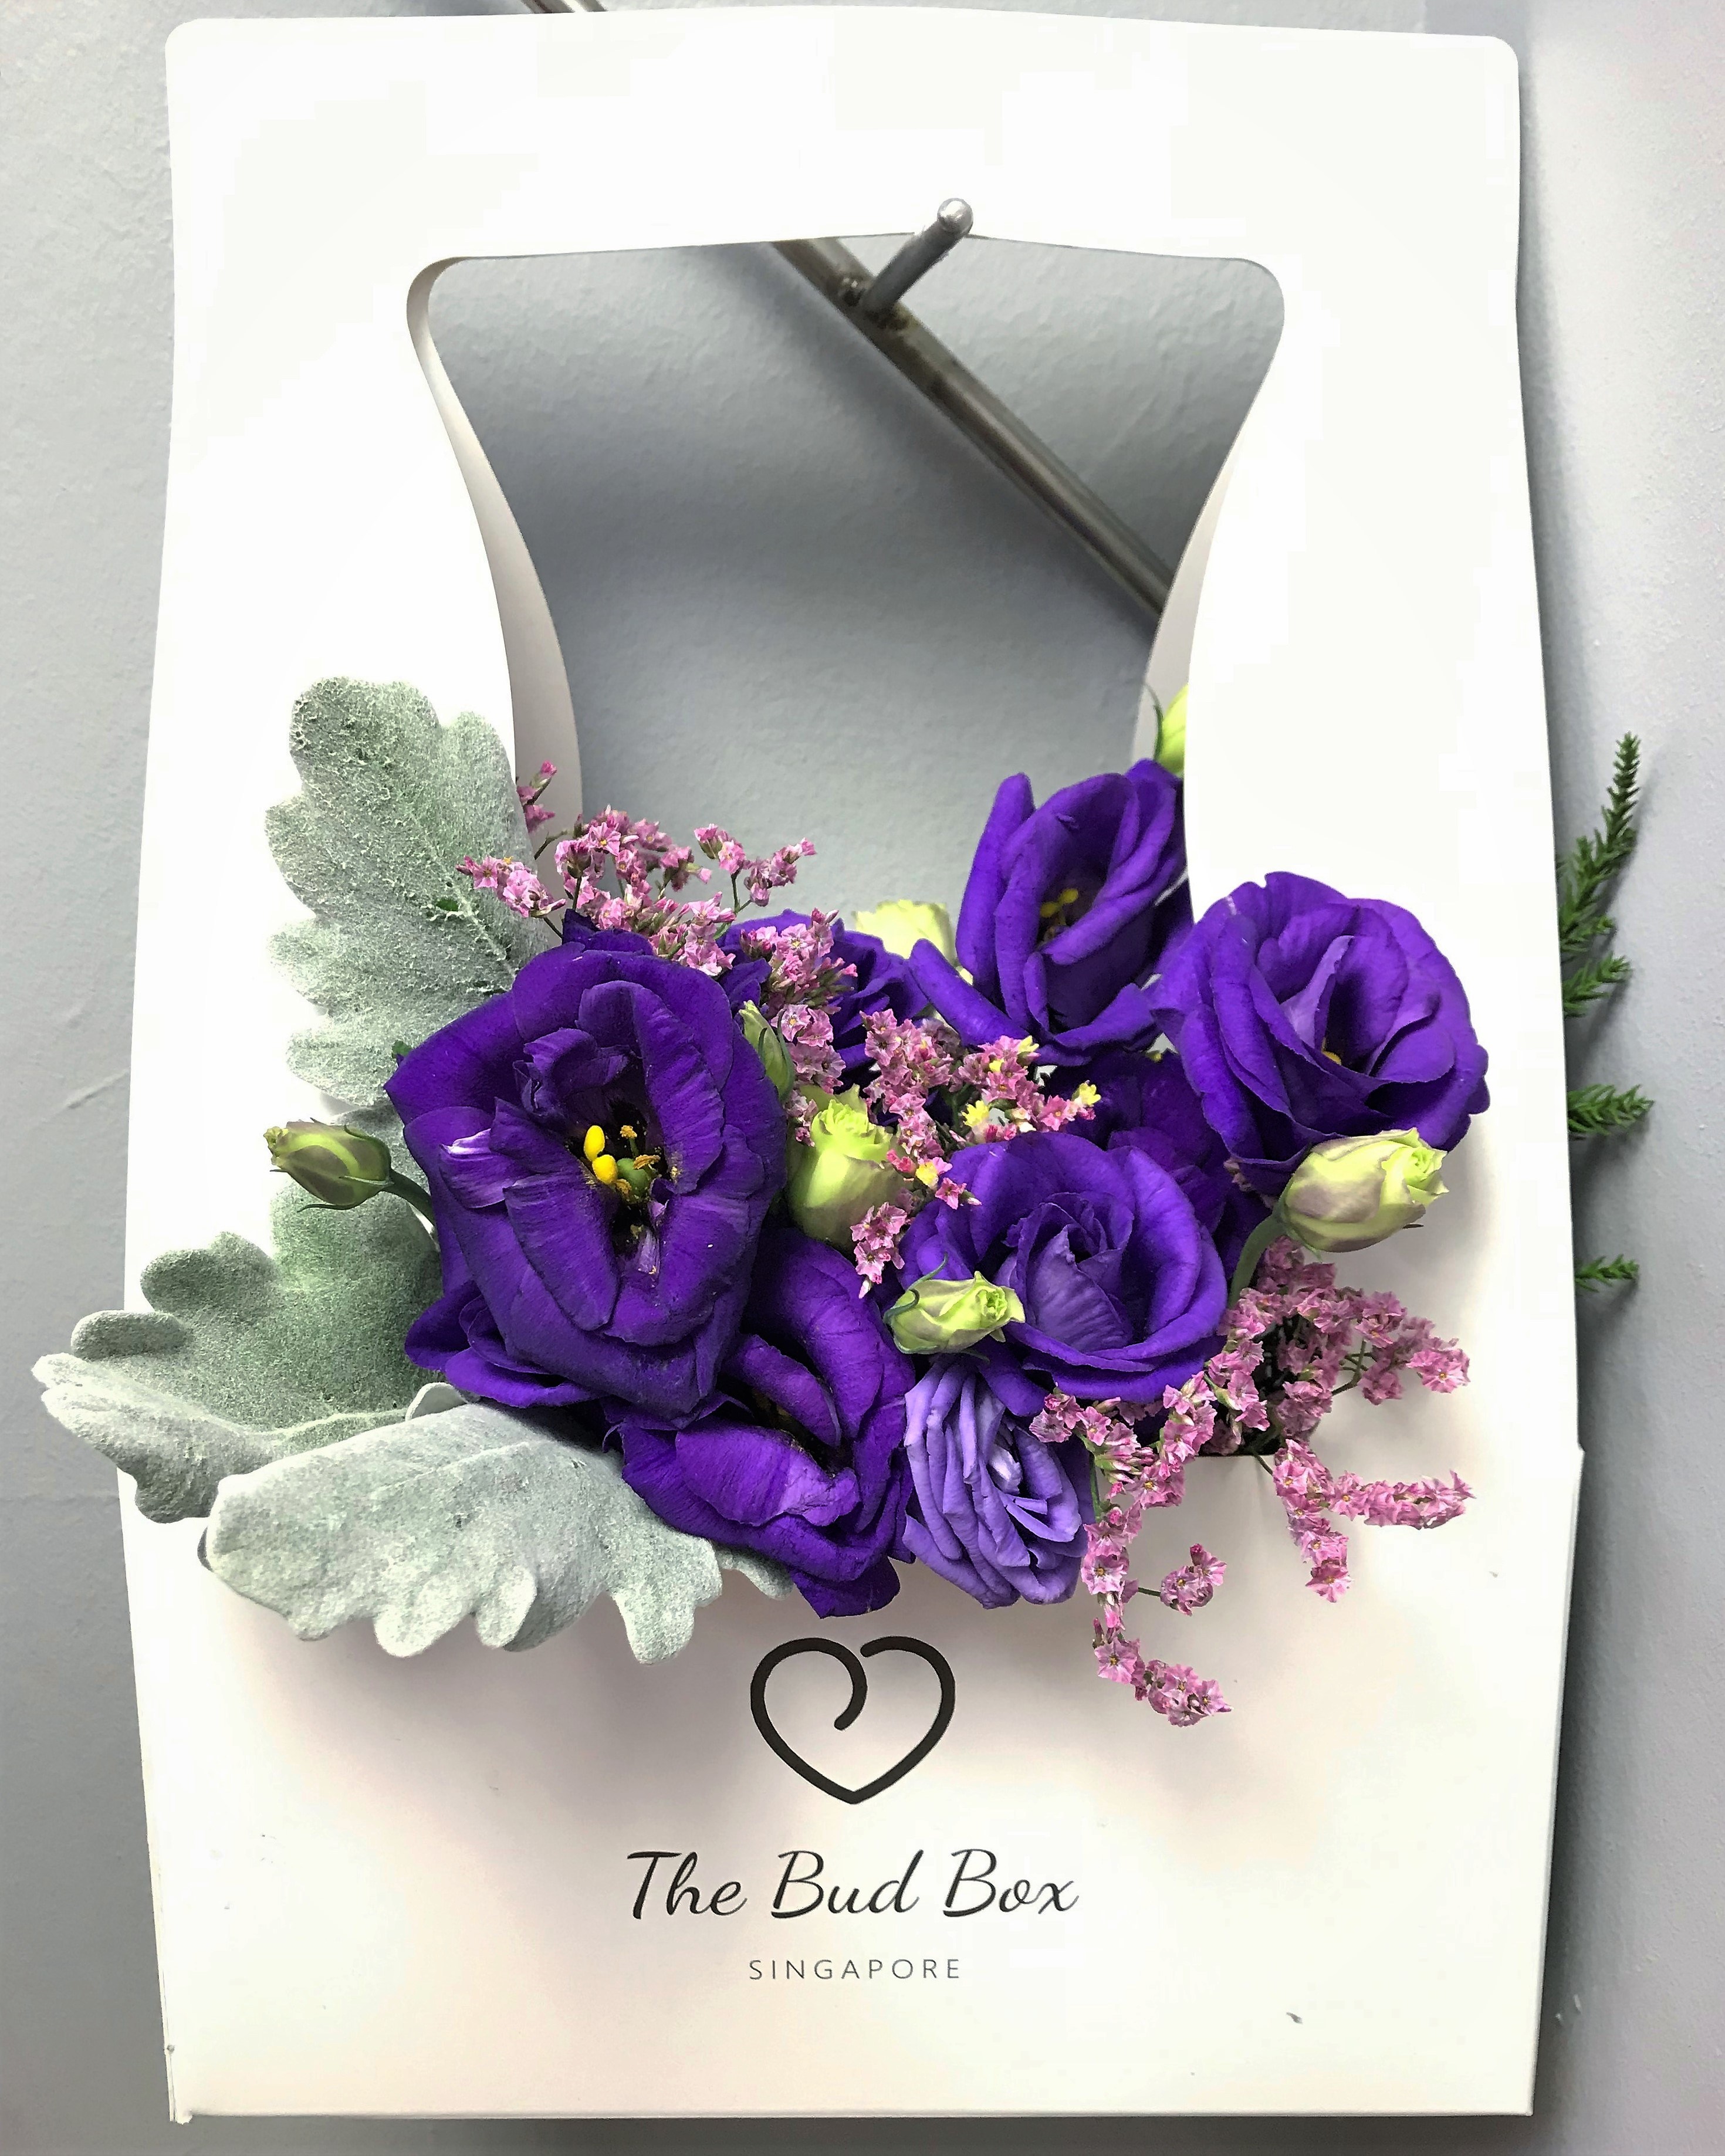 Bud Box for 9 July - Bloom in a Box